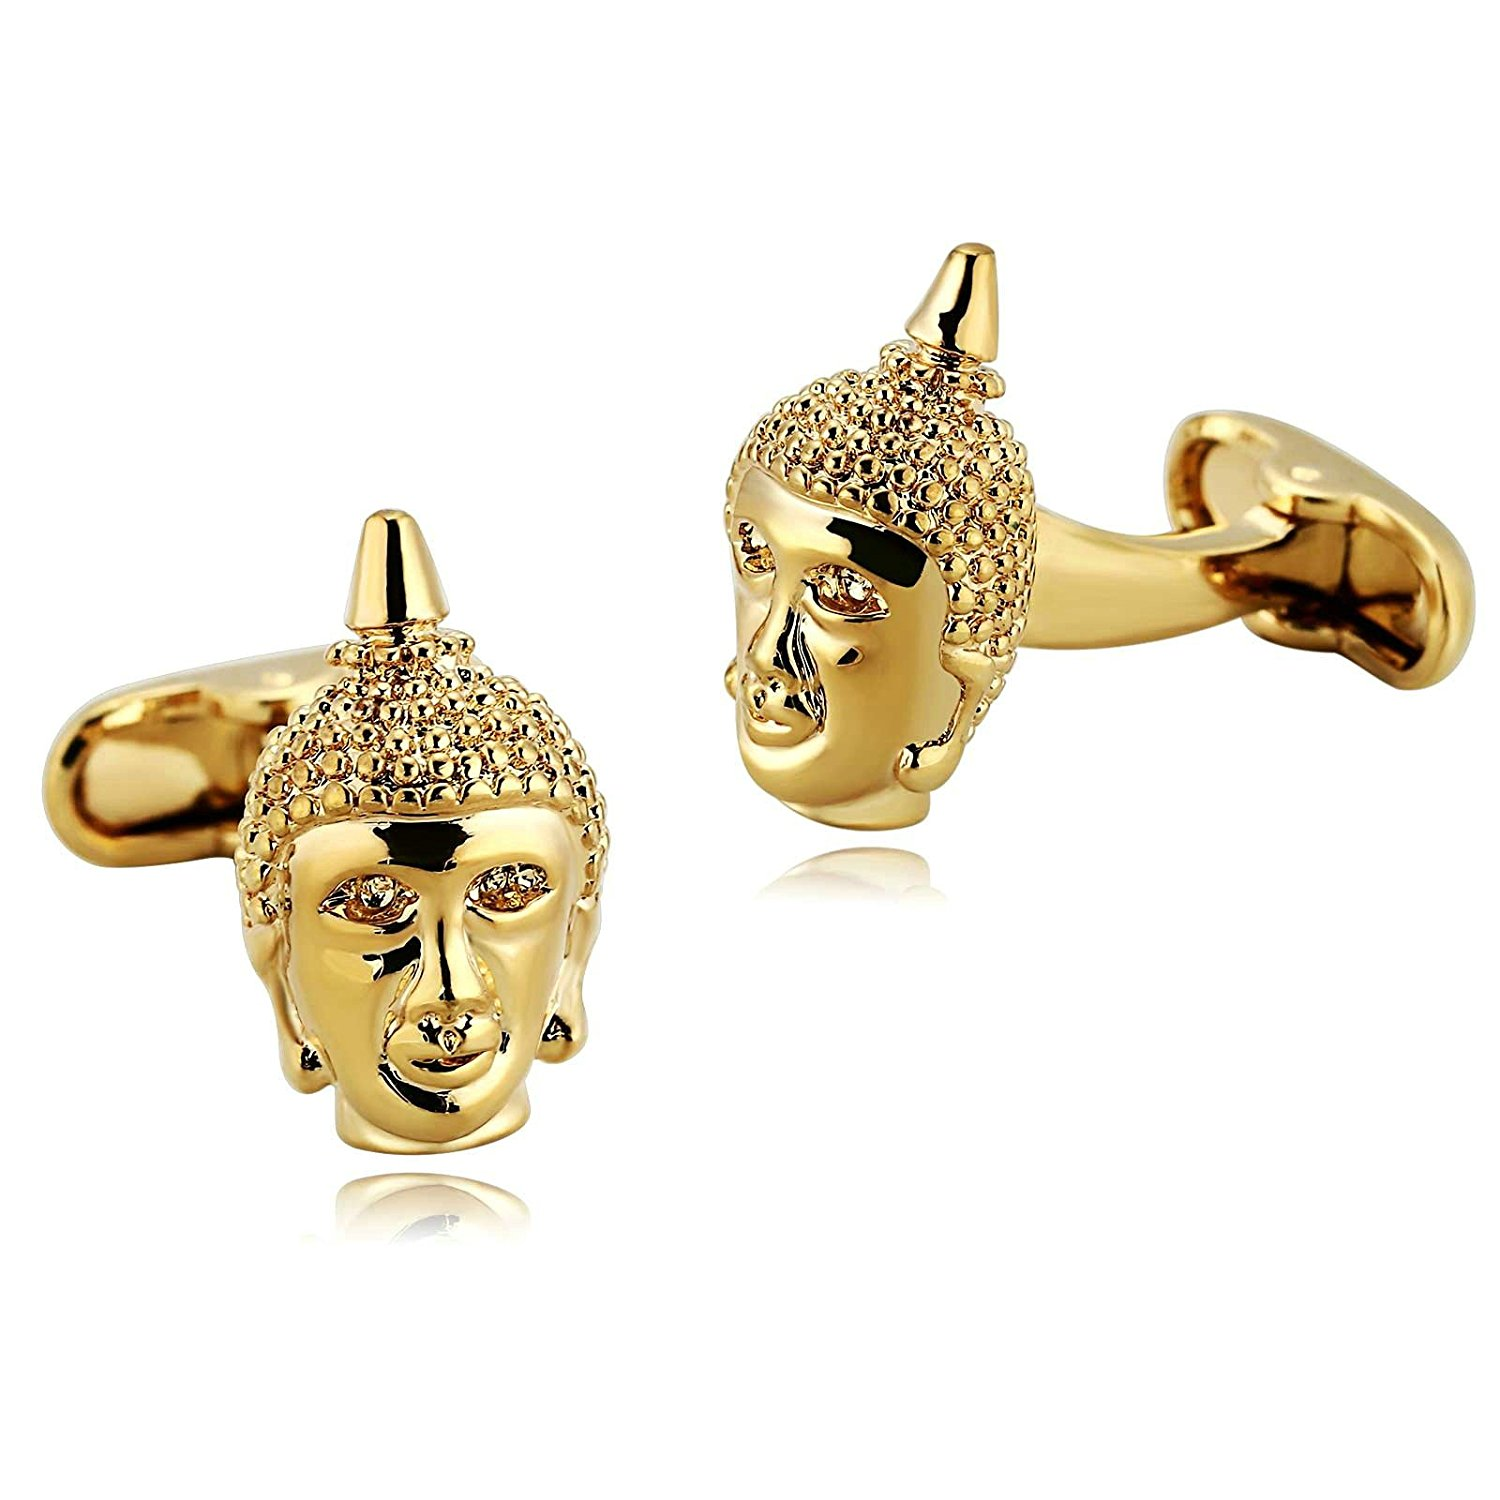 6 Kinds Stainless Steel Cufflinks For Men Boys 1 Pair Stainless Steel Cufflinks Dad Jewelry Box Charm Fancy Unique Aooaz Mh49